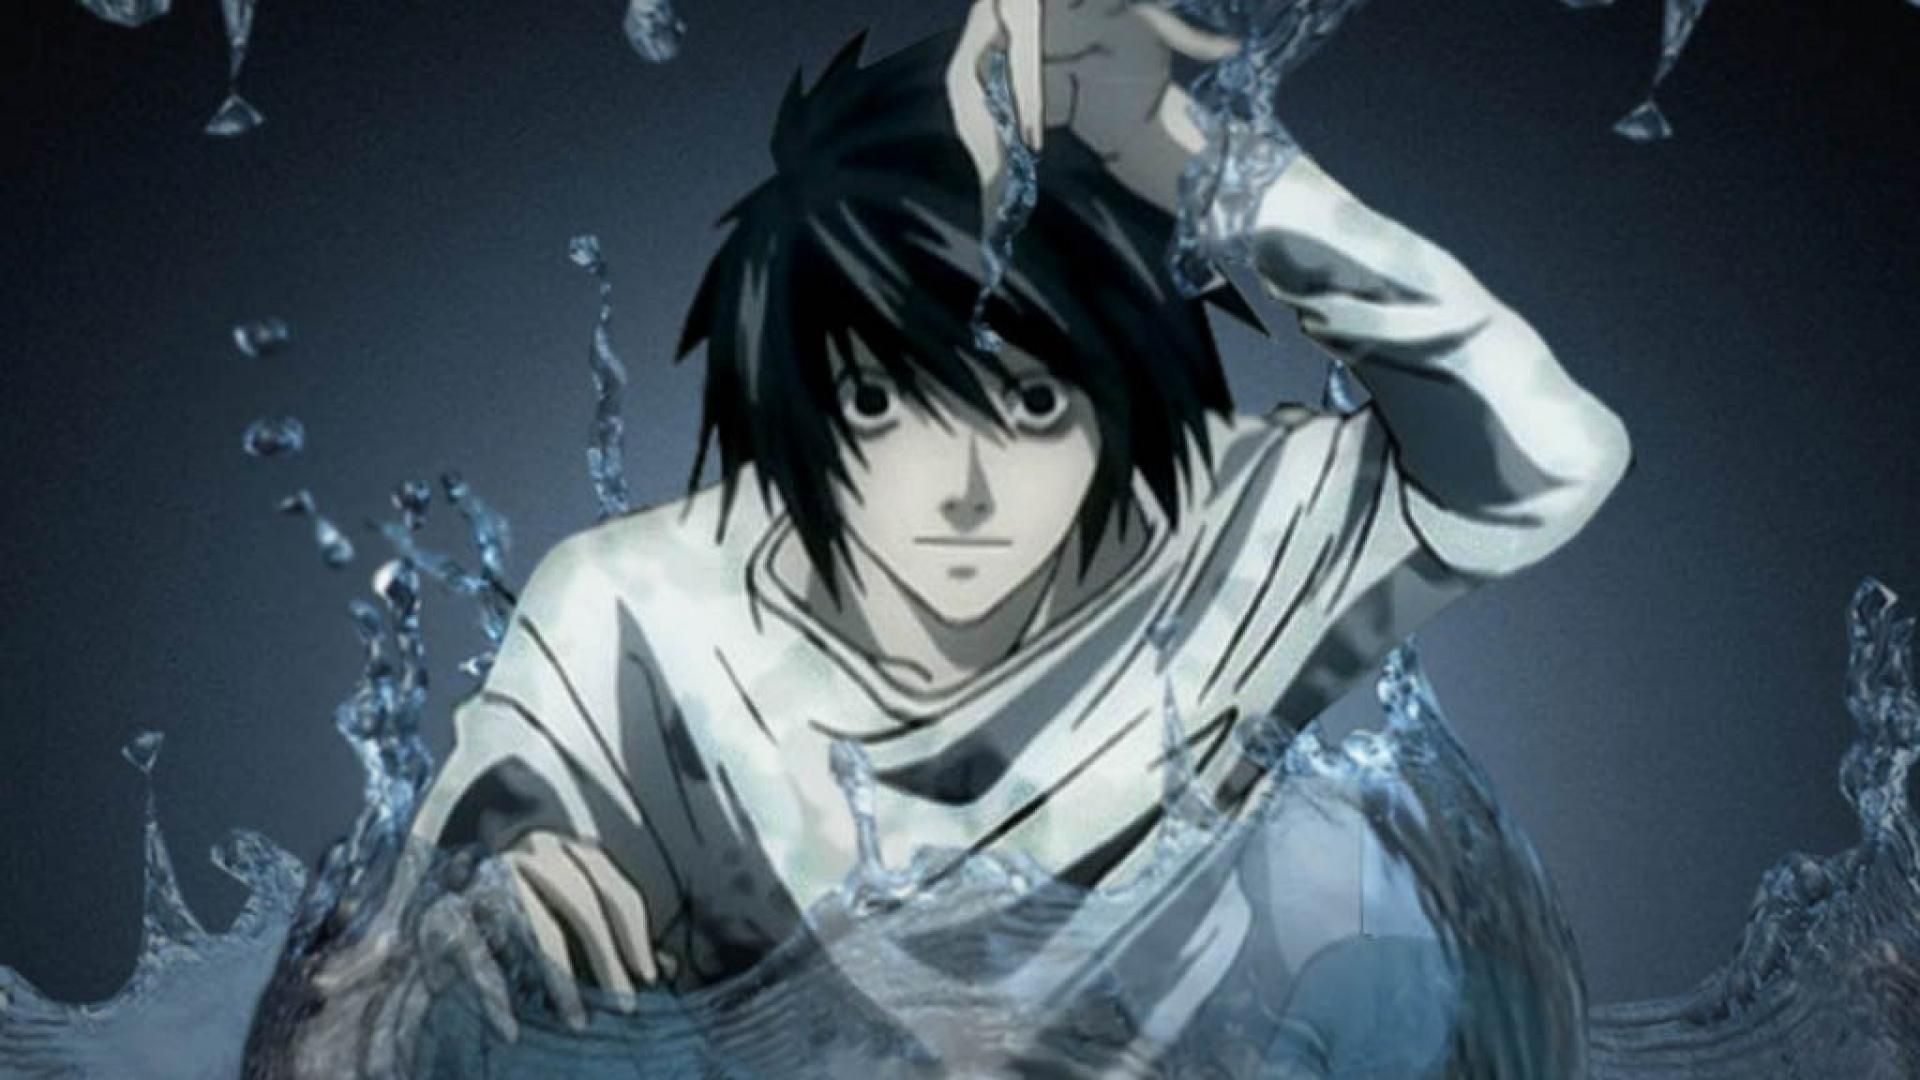 Anime Wallpaper Hd Black Background 10 Most Popular Cool Hd Anime Wallpapers Full In 2020 Anime Backgrounds Wallpapers Anime Wallpaper Phone Anime Wallpaper Download